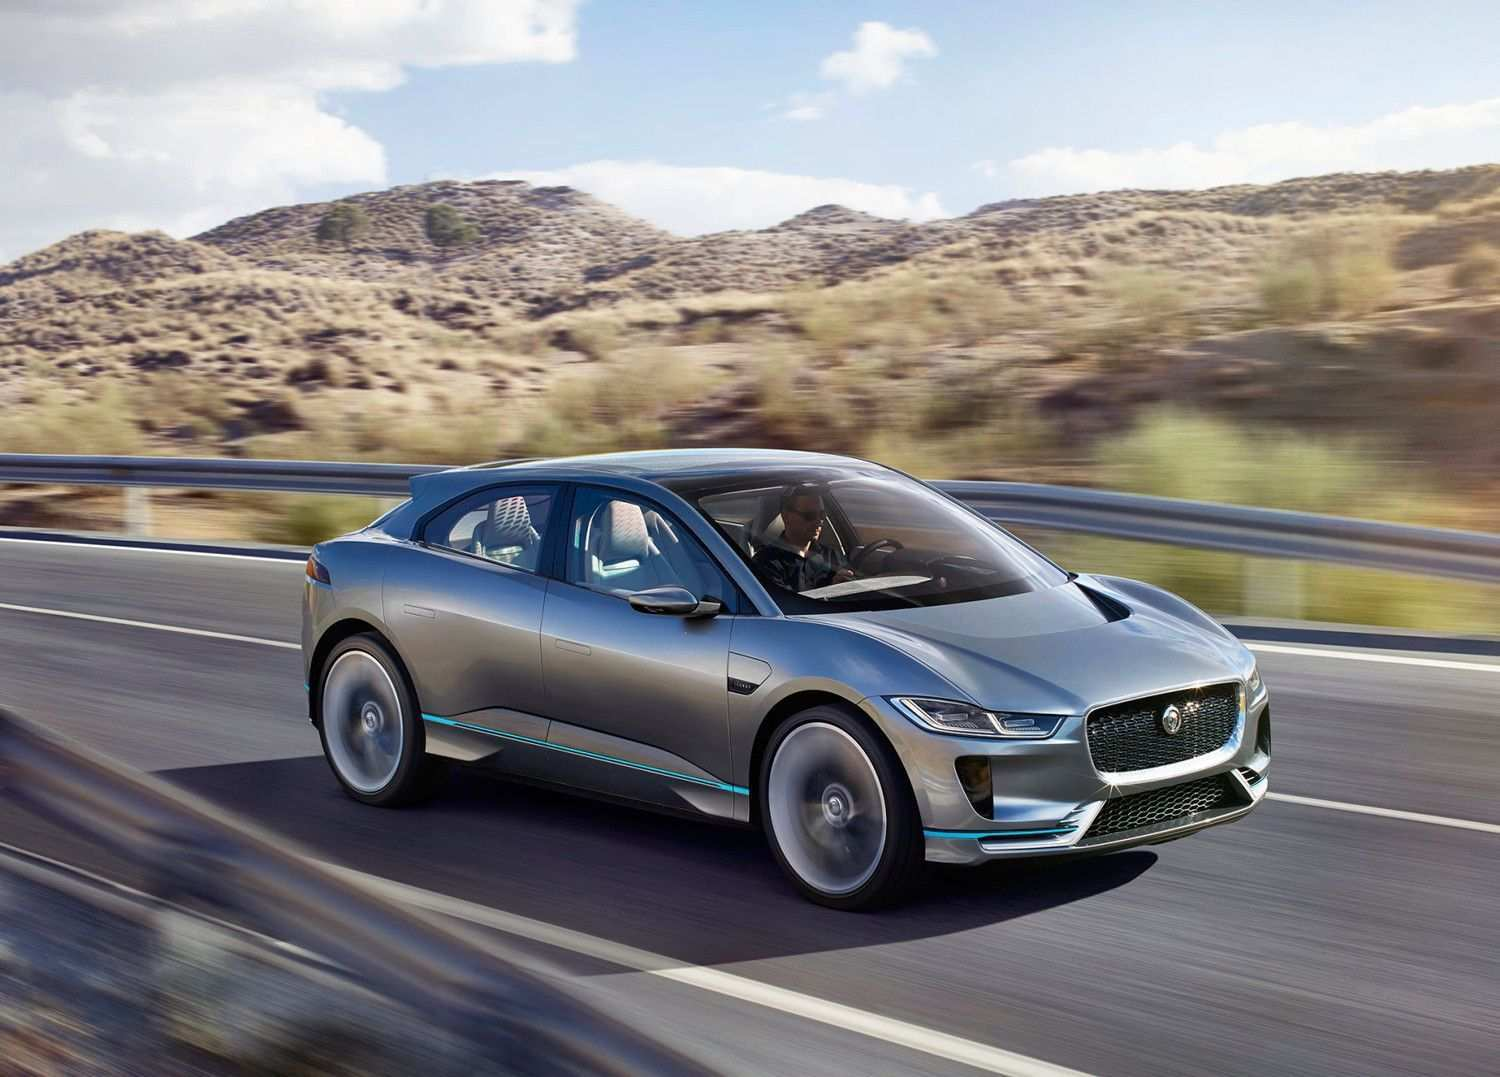 60 Best Review Jaguar Neuheiten Bis 2020 Research New with Jaguar Neuheiten Bis 2020